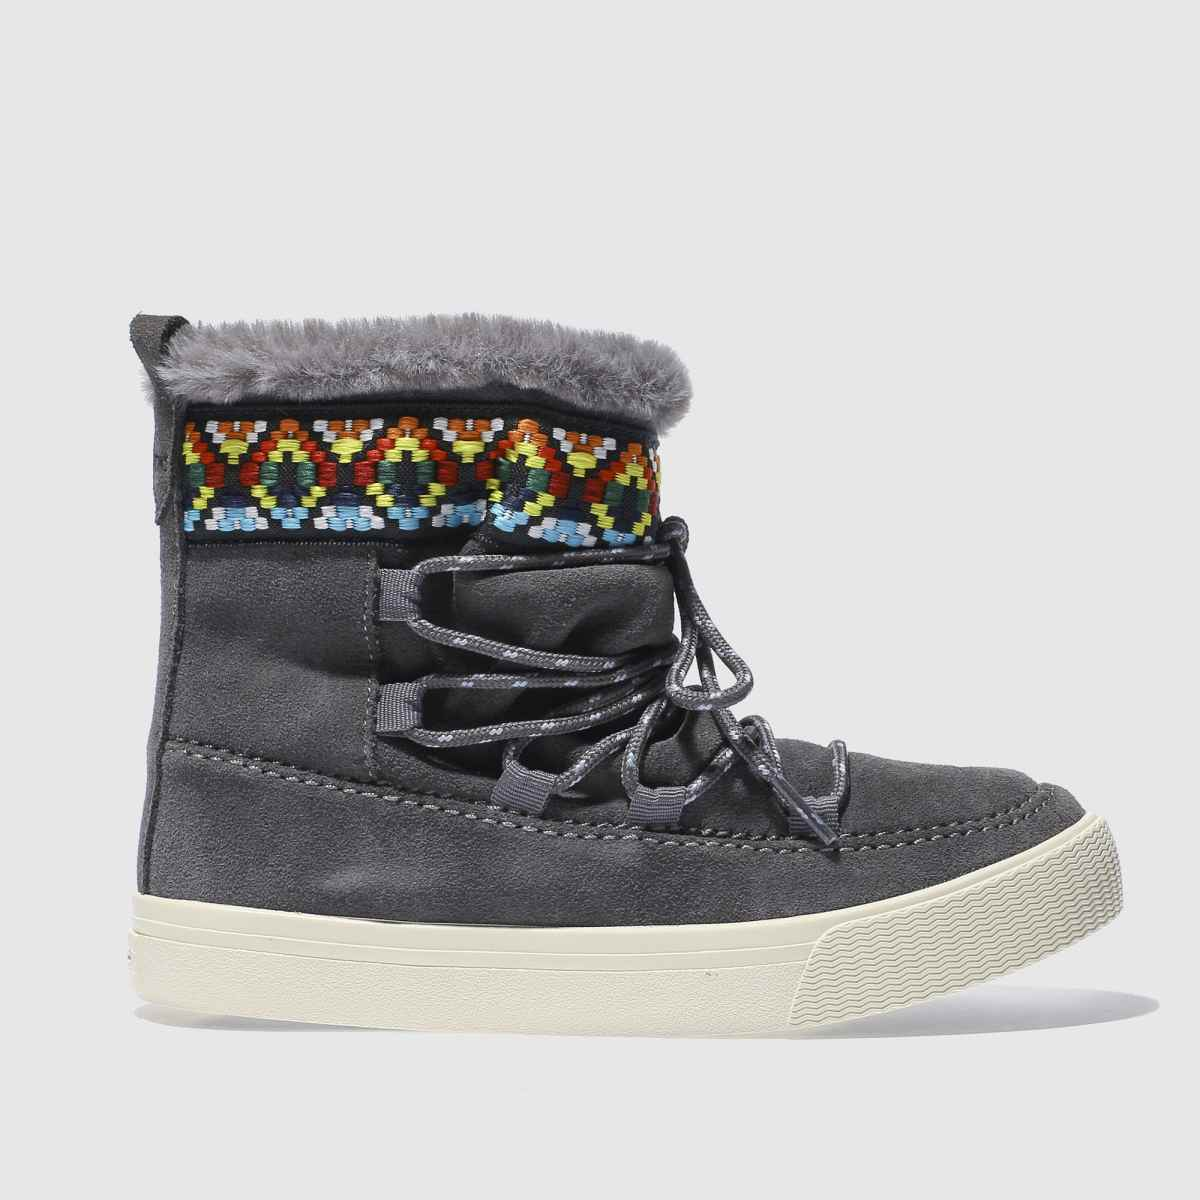 toms dark grey alpine boot boots